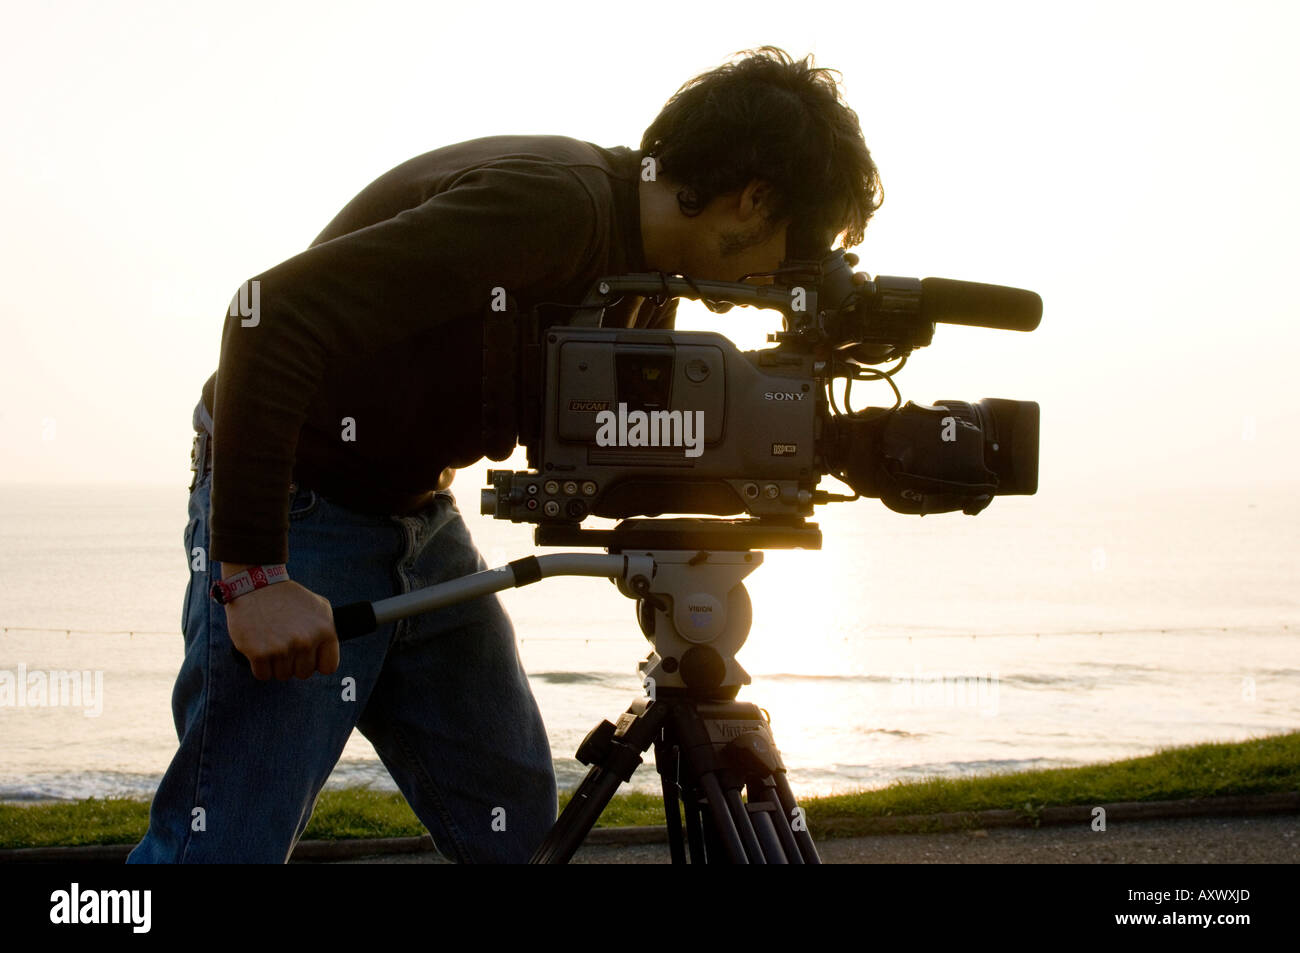 man student at Aberystwyth University TV and Film media studies with Sony video camera and tripod on location, UK - Stock Image